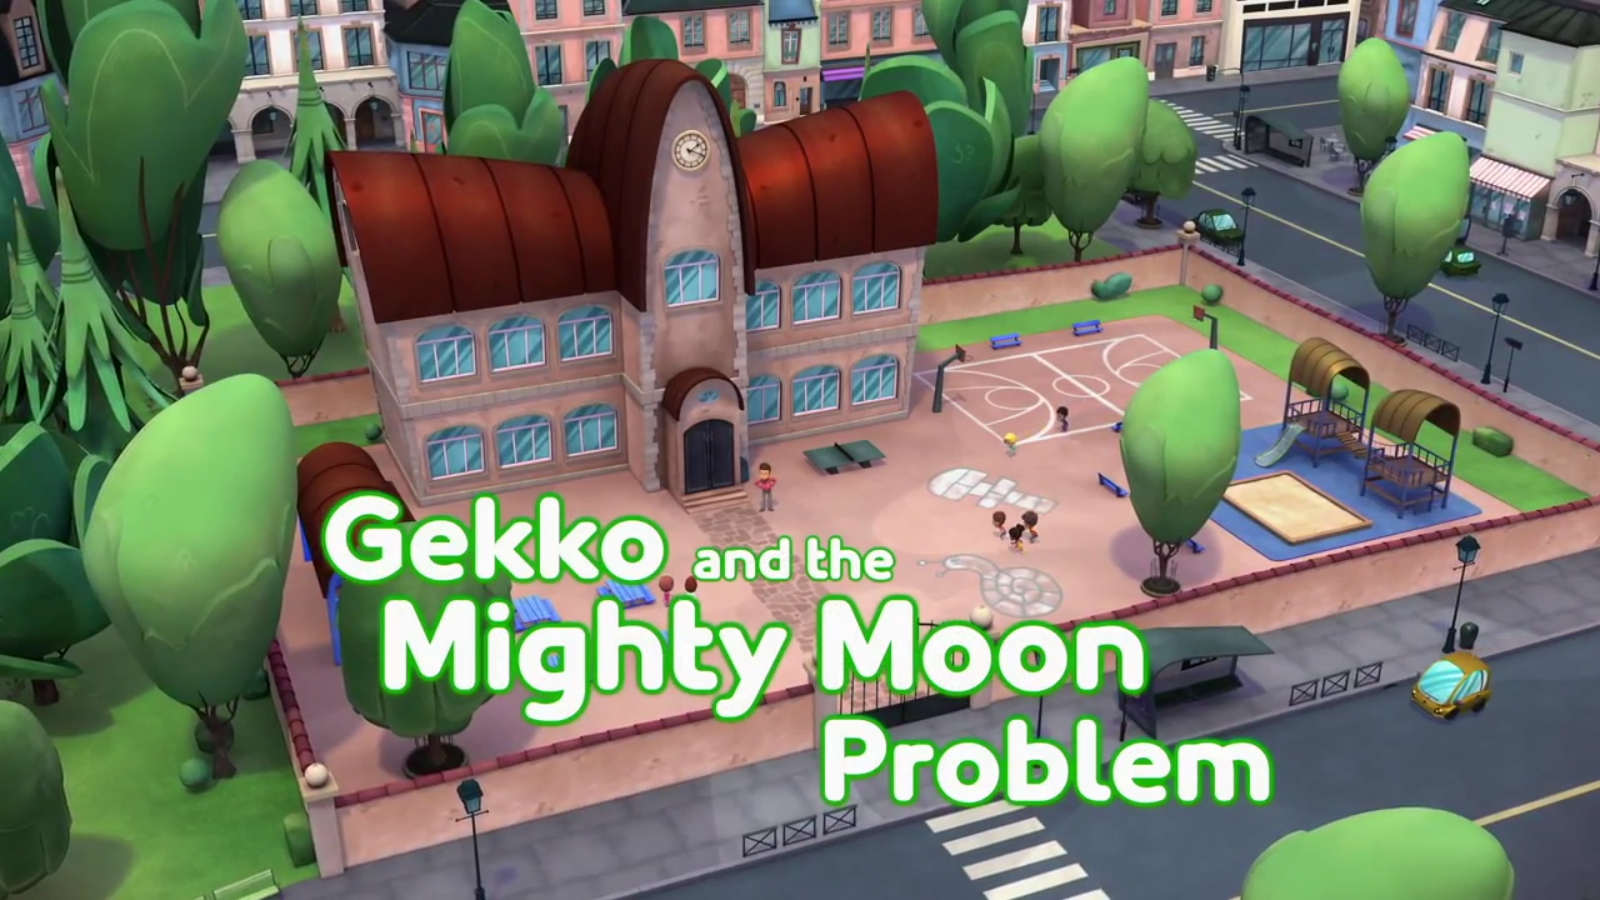 Gekko and the Mighty Moon Problem